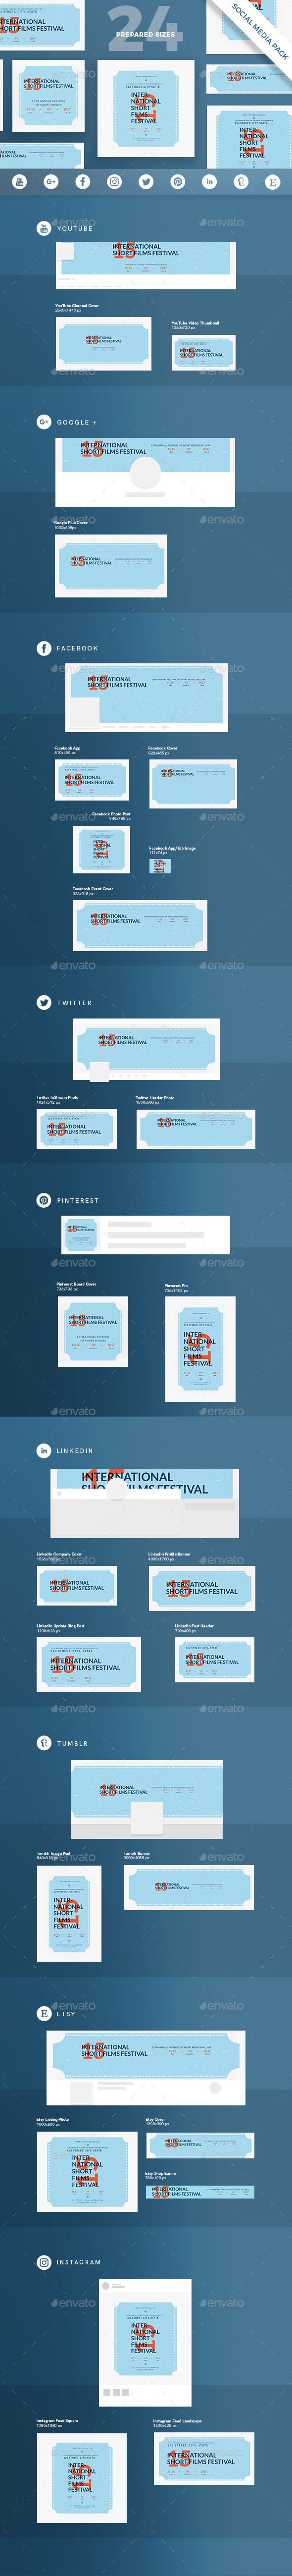 GraphicRiver Film Festival Social Media Pack 20811439